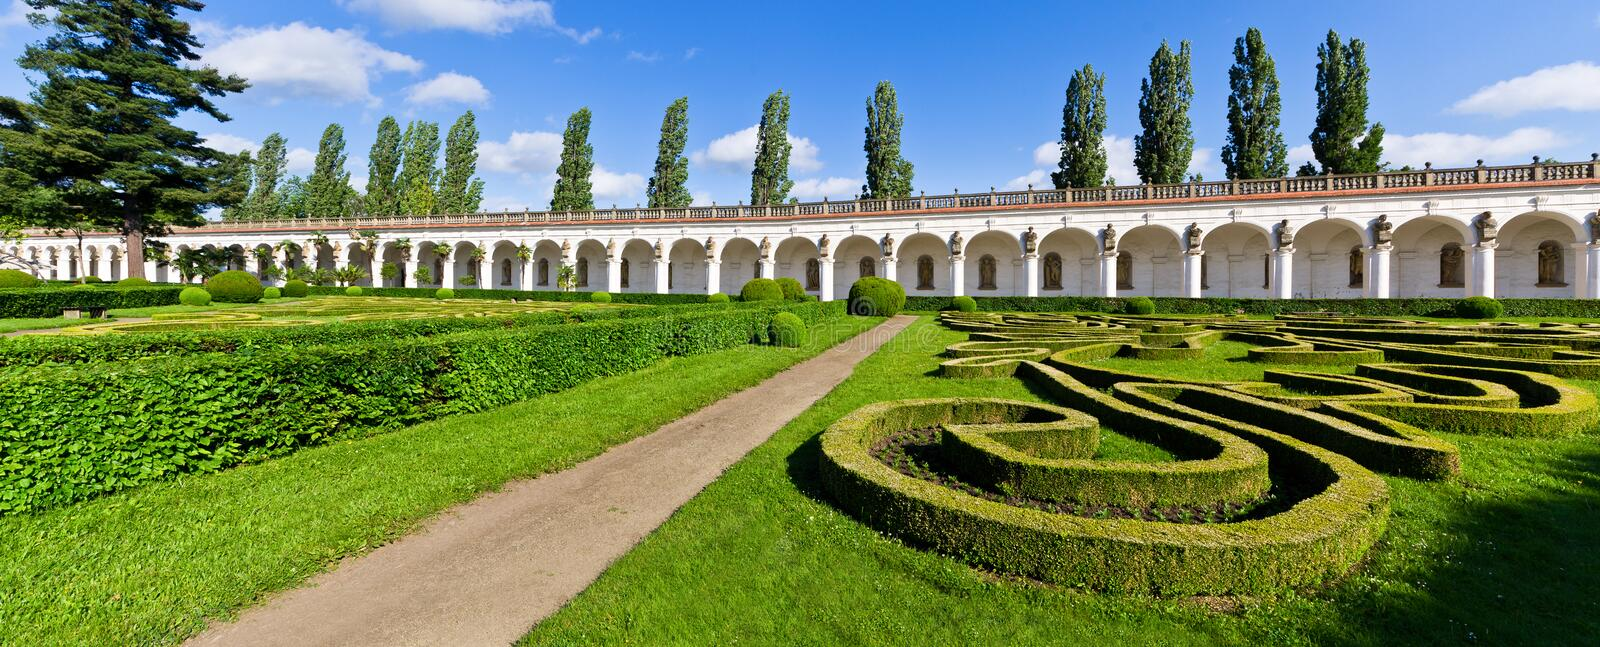 Flower gardens in Kromeriz, Czech Republic. Flower gardens in Kromeriz - Czech Republic royalty free stock image